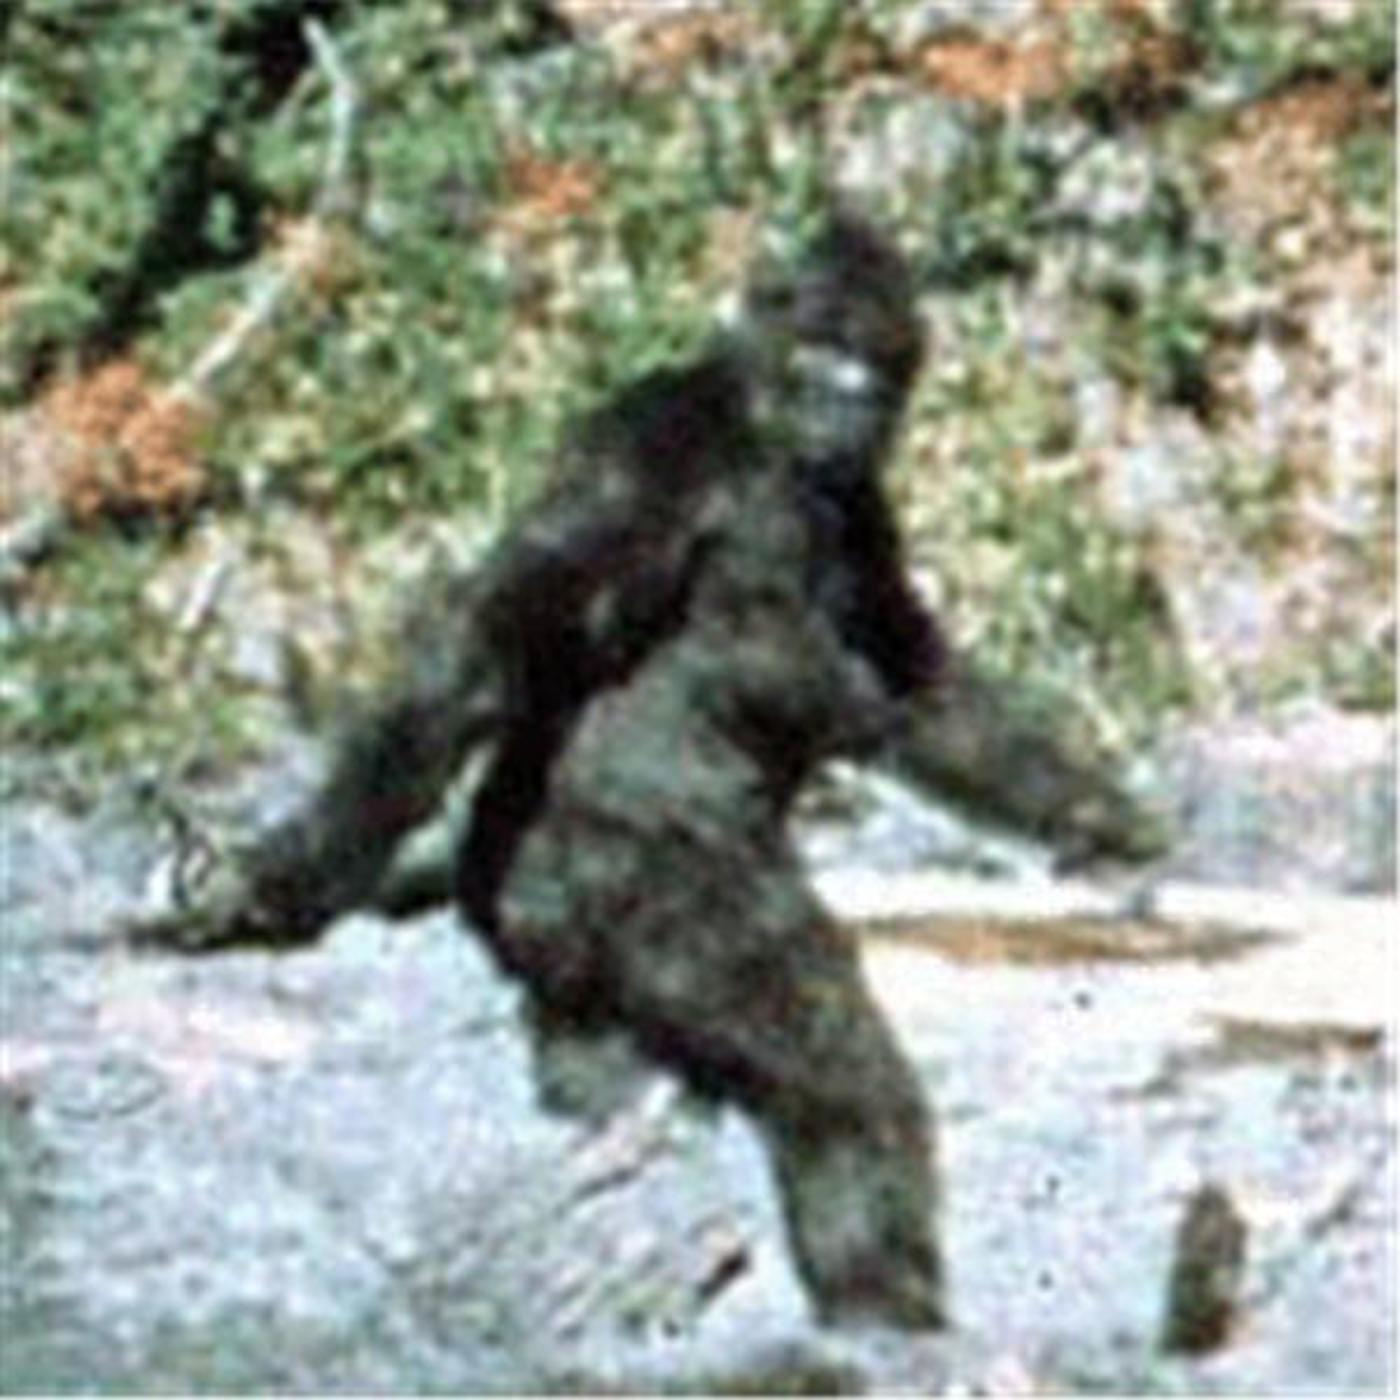 Bigfoot Ground Zero - Claudia Ackley Interview / Washington Sighting